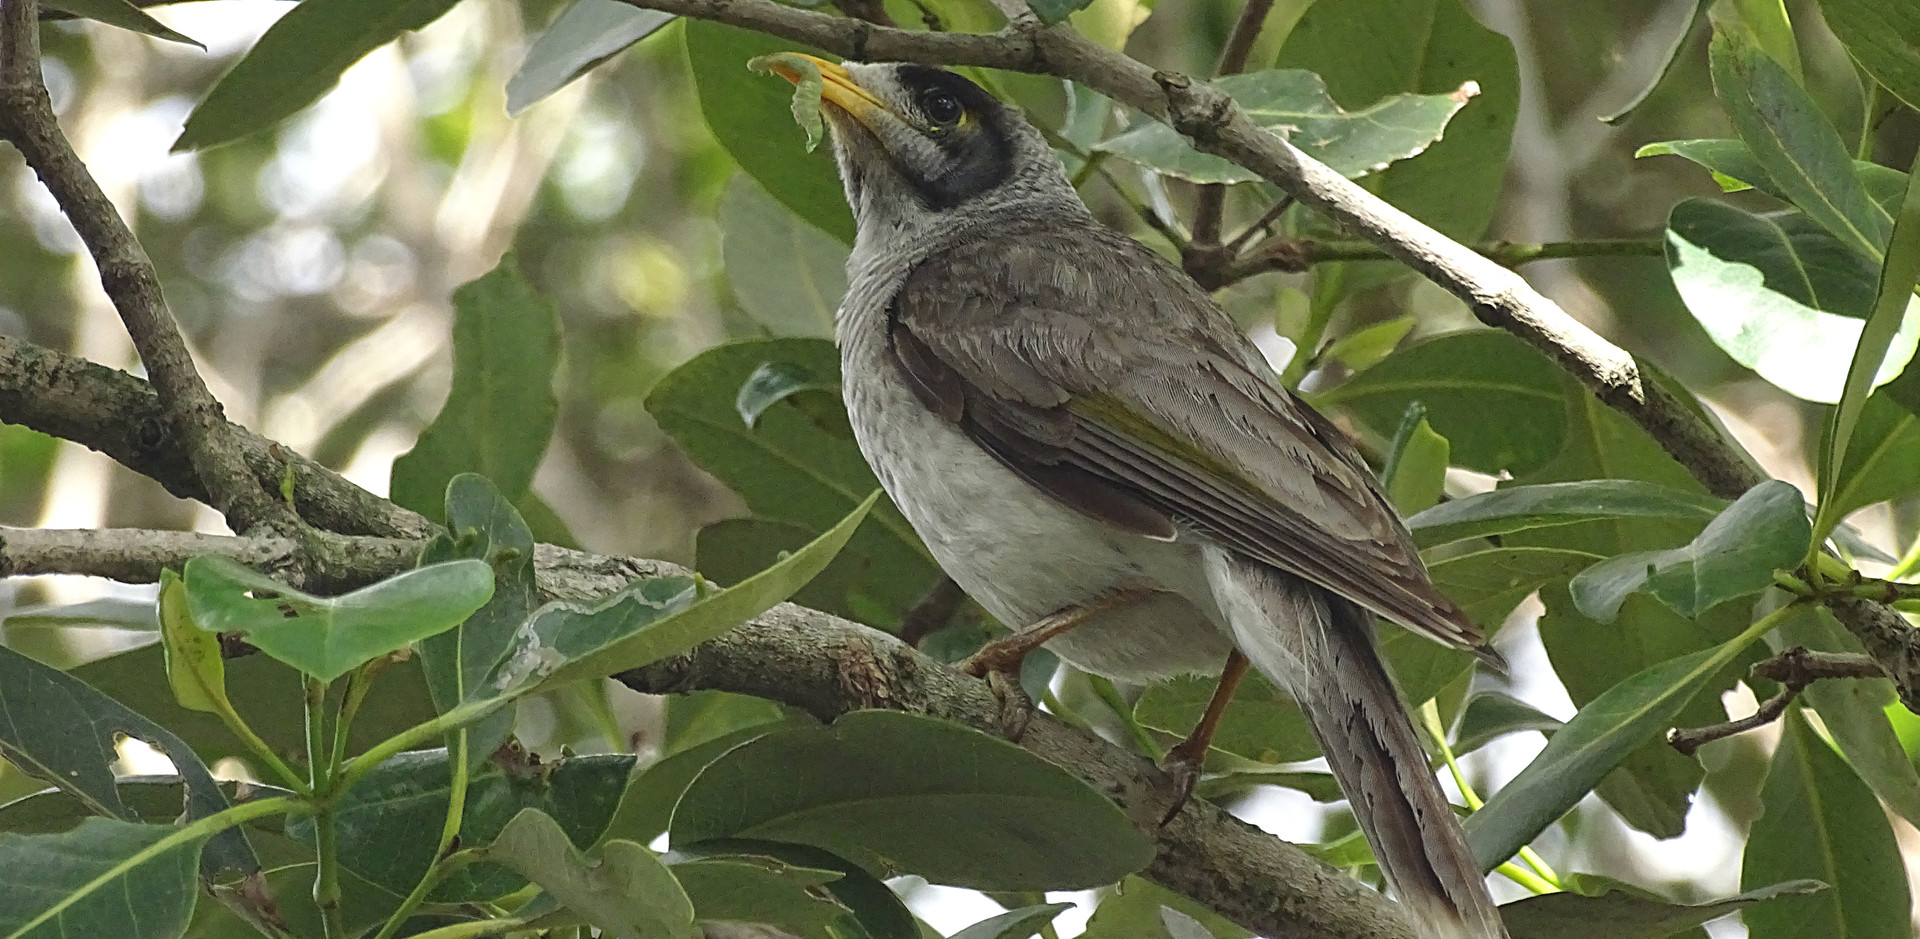 Adult Noisy Miner bringing a catepillar to nest